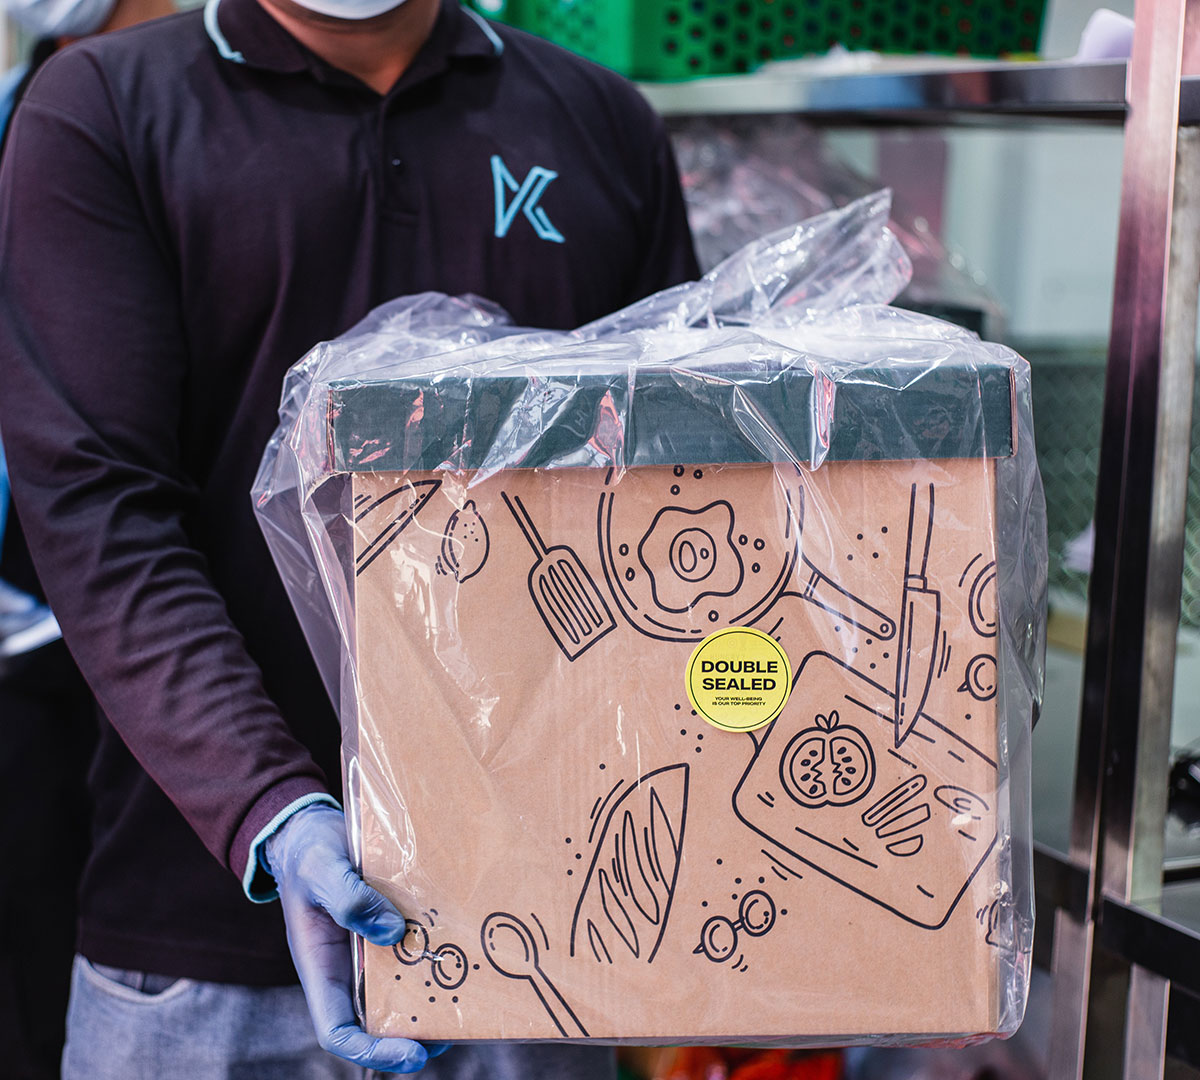 New Dubai grocery delivery platform Kitopi promises delivery within an hour